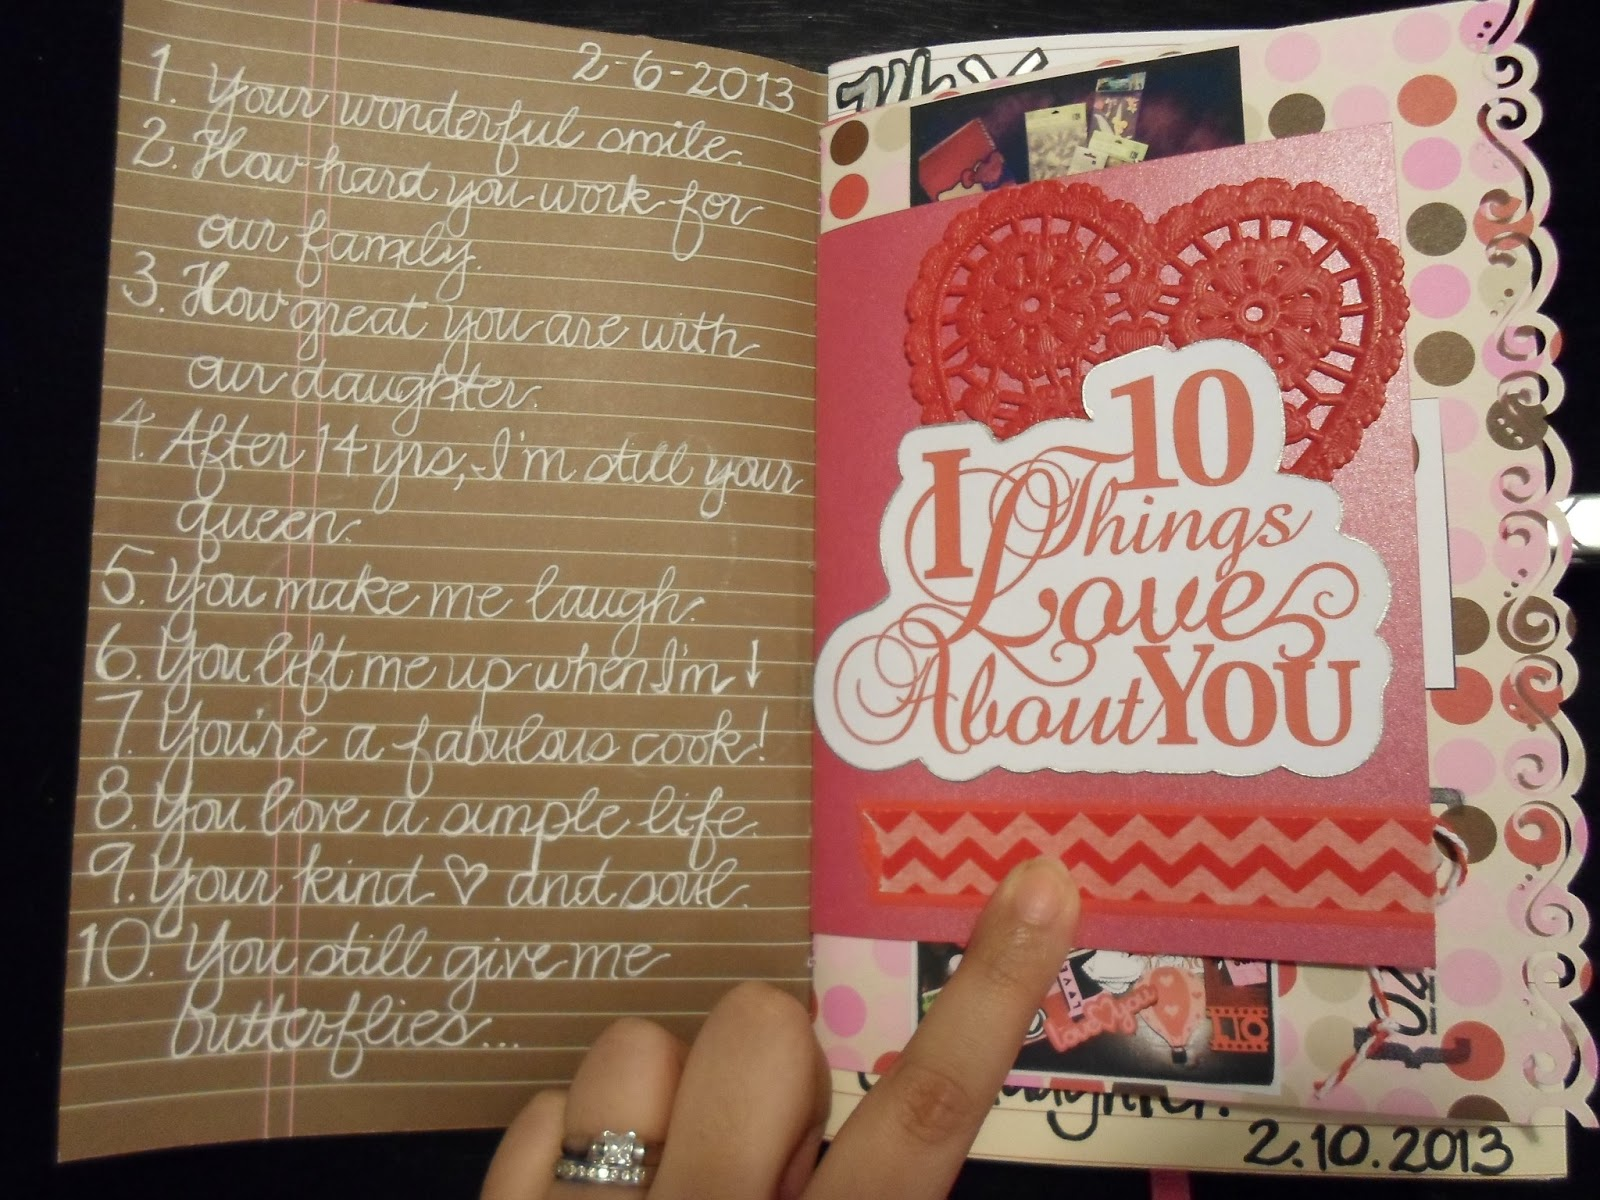 10 Things I Love About You: A Crafty Island Girl: Daybook Of Love: Weeks 1